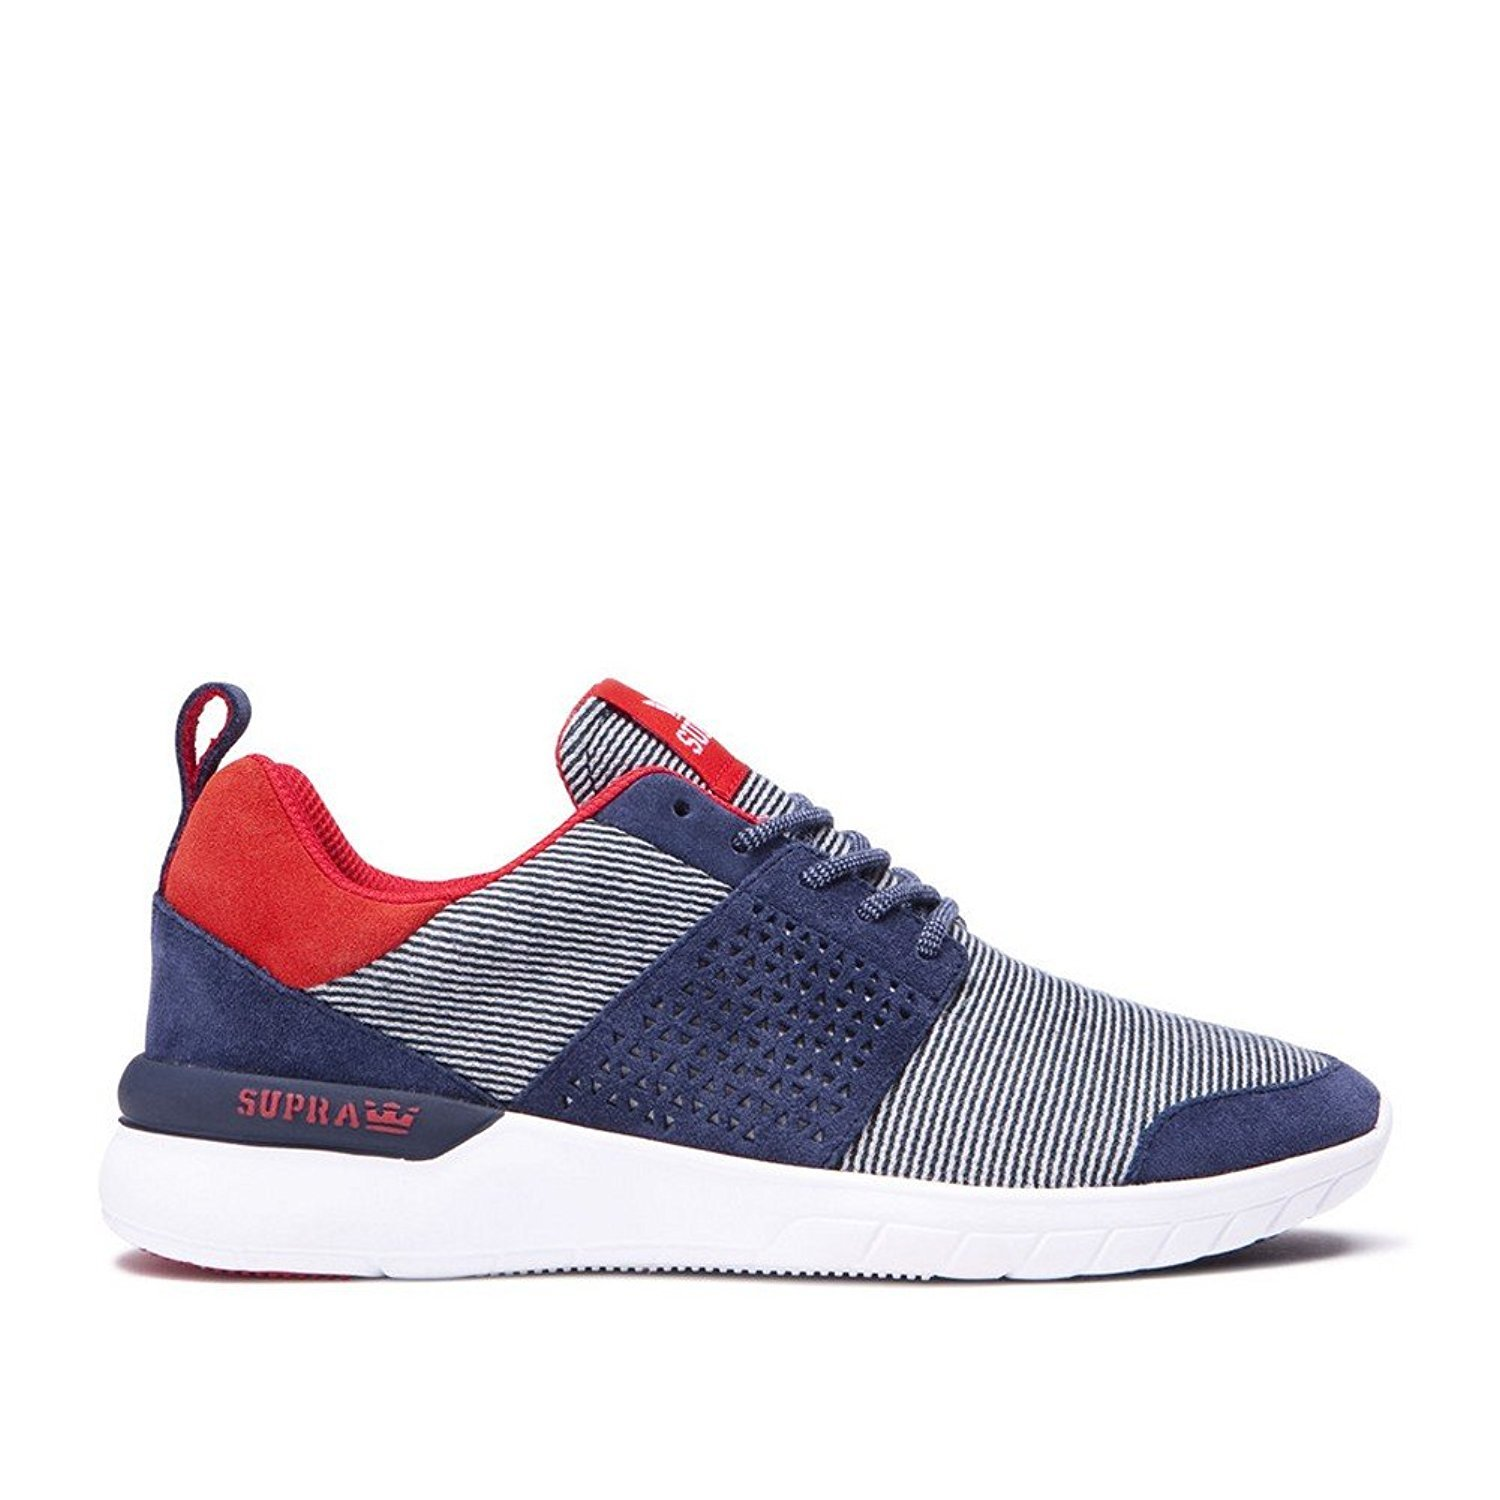 Supra Women's Scissor '18 Shoes B01MECZD8K 7.5 M US|Navy / Red - White